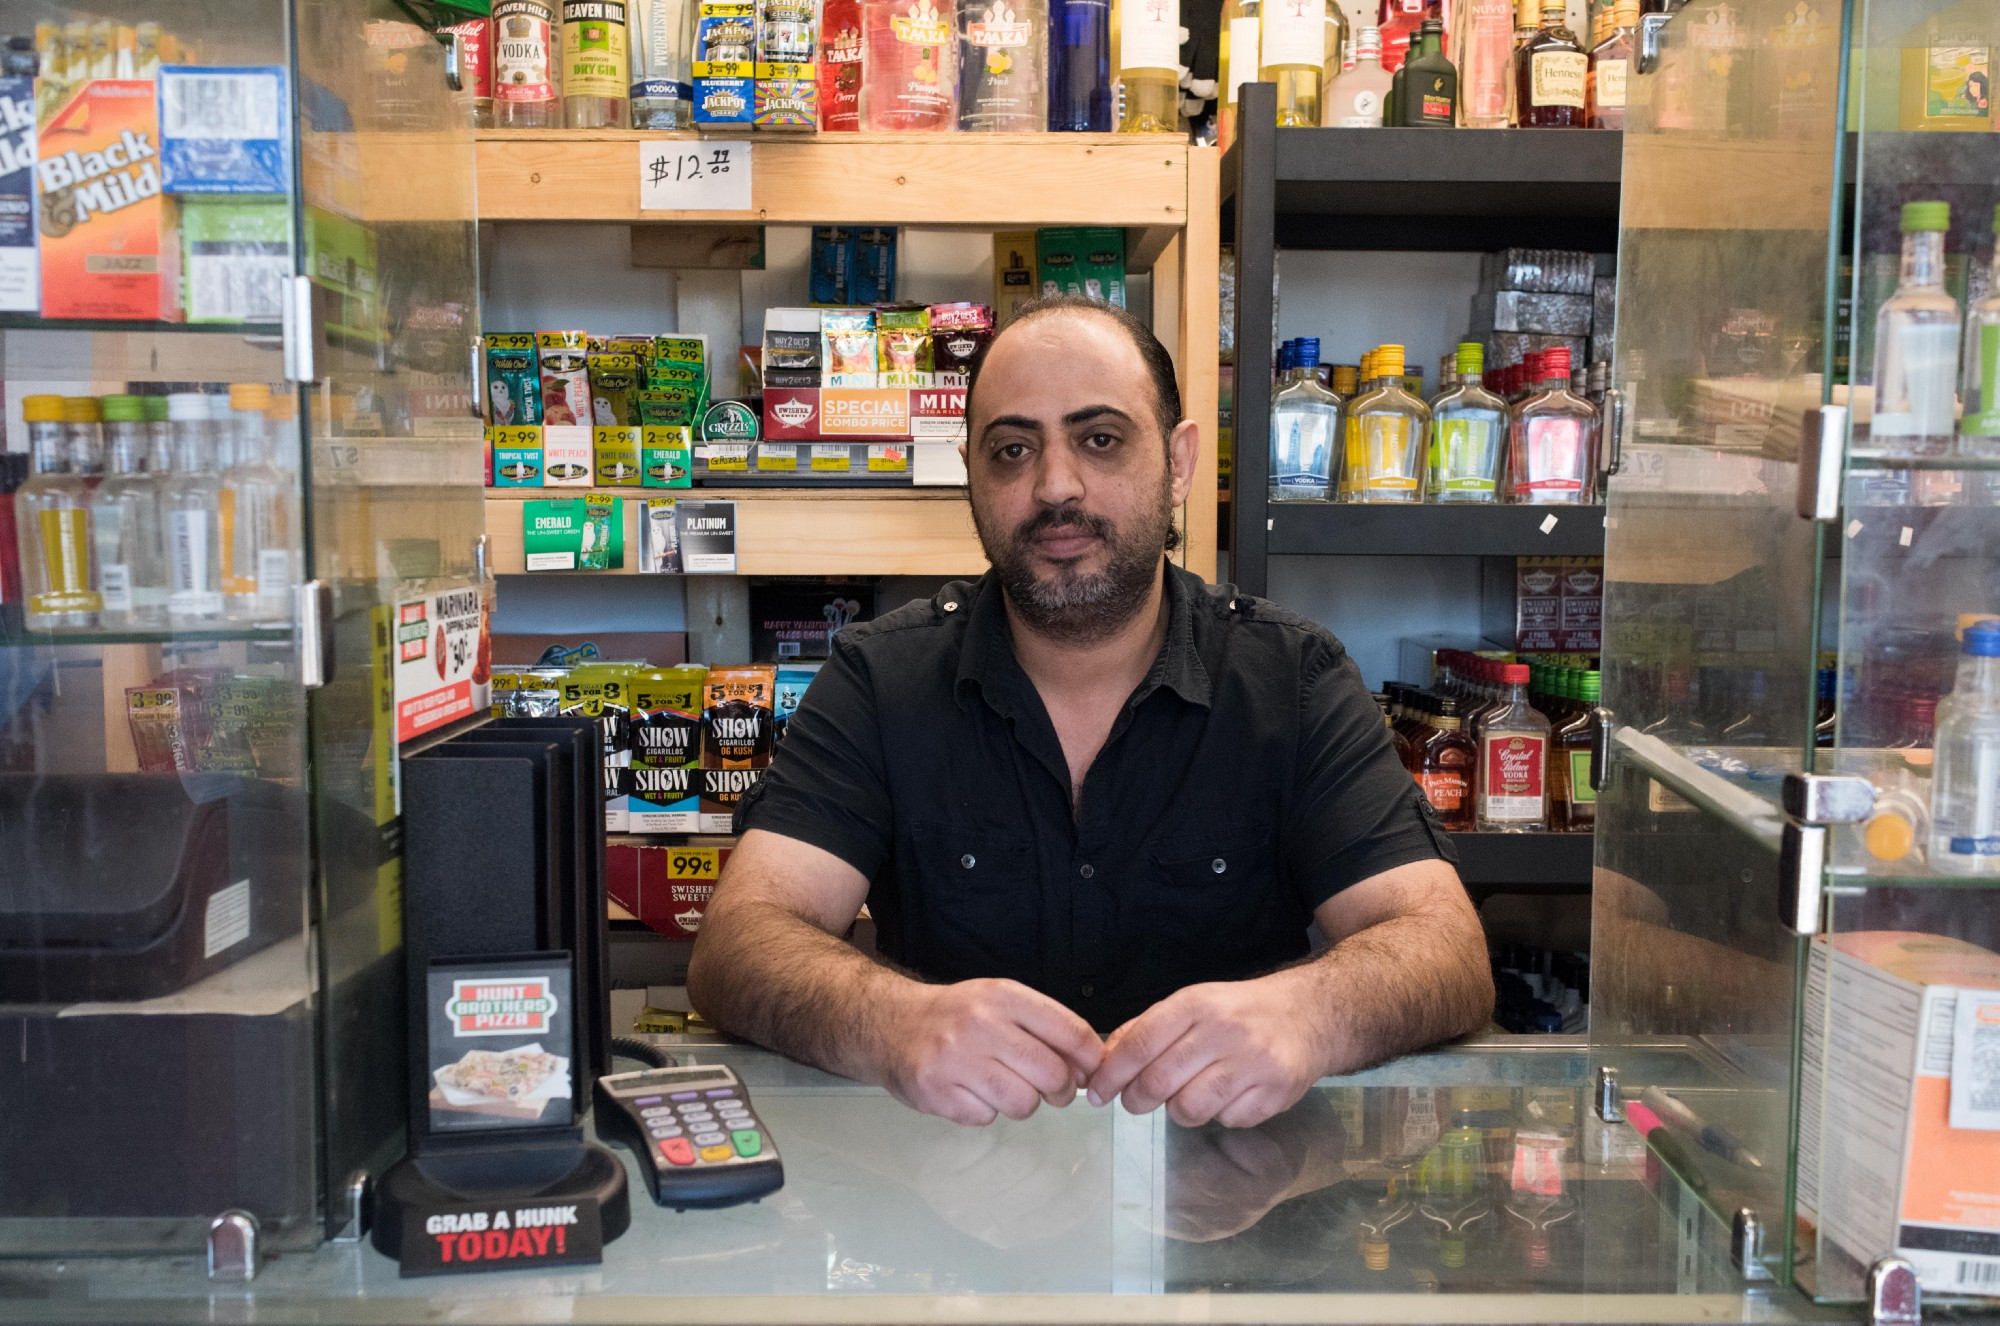 a town forgotten chris arnade medium the bodega owner khalid came from tennessee two years ago at the suggestion of a relative super friendly he jokes everyone who comes in